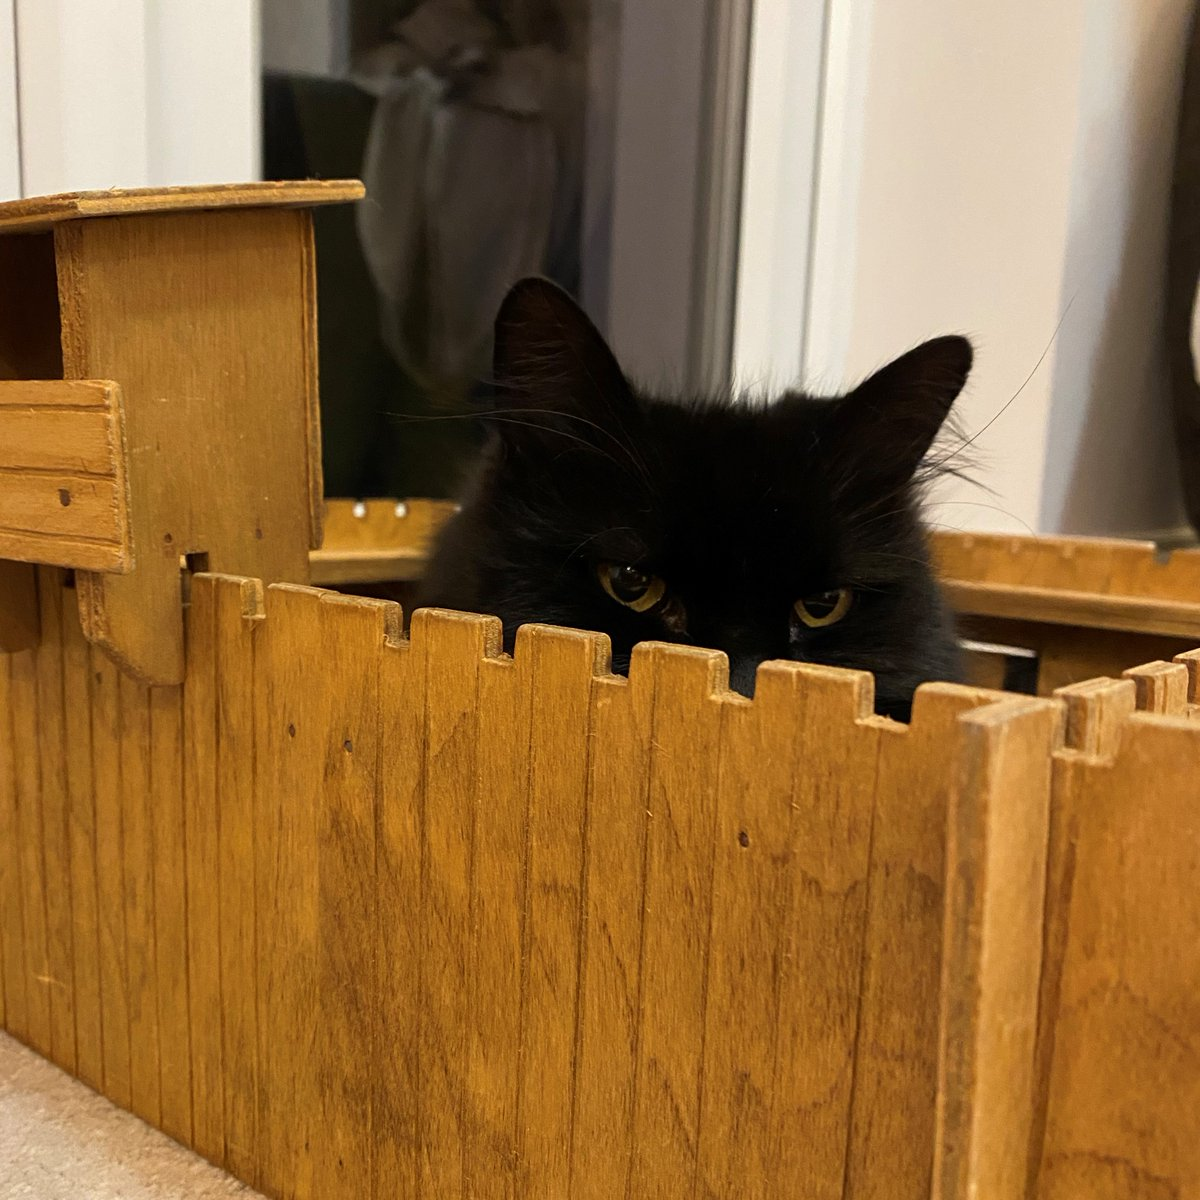 Teddy is defending his fort! Have a valiant #caturday. 😎 https://t.co/xXrHEpbG5z